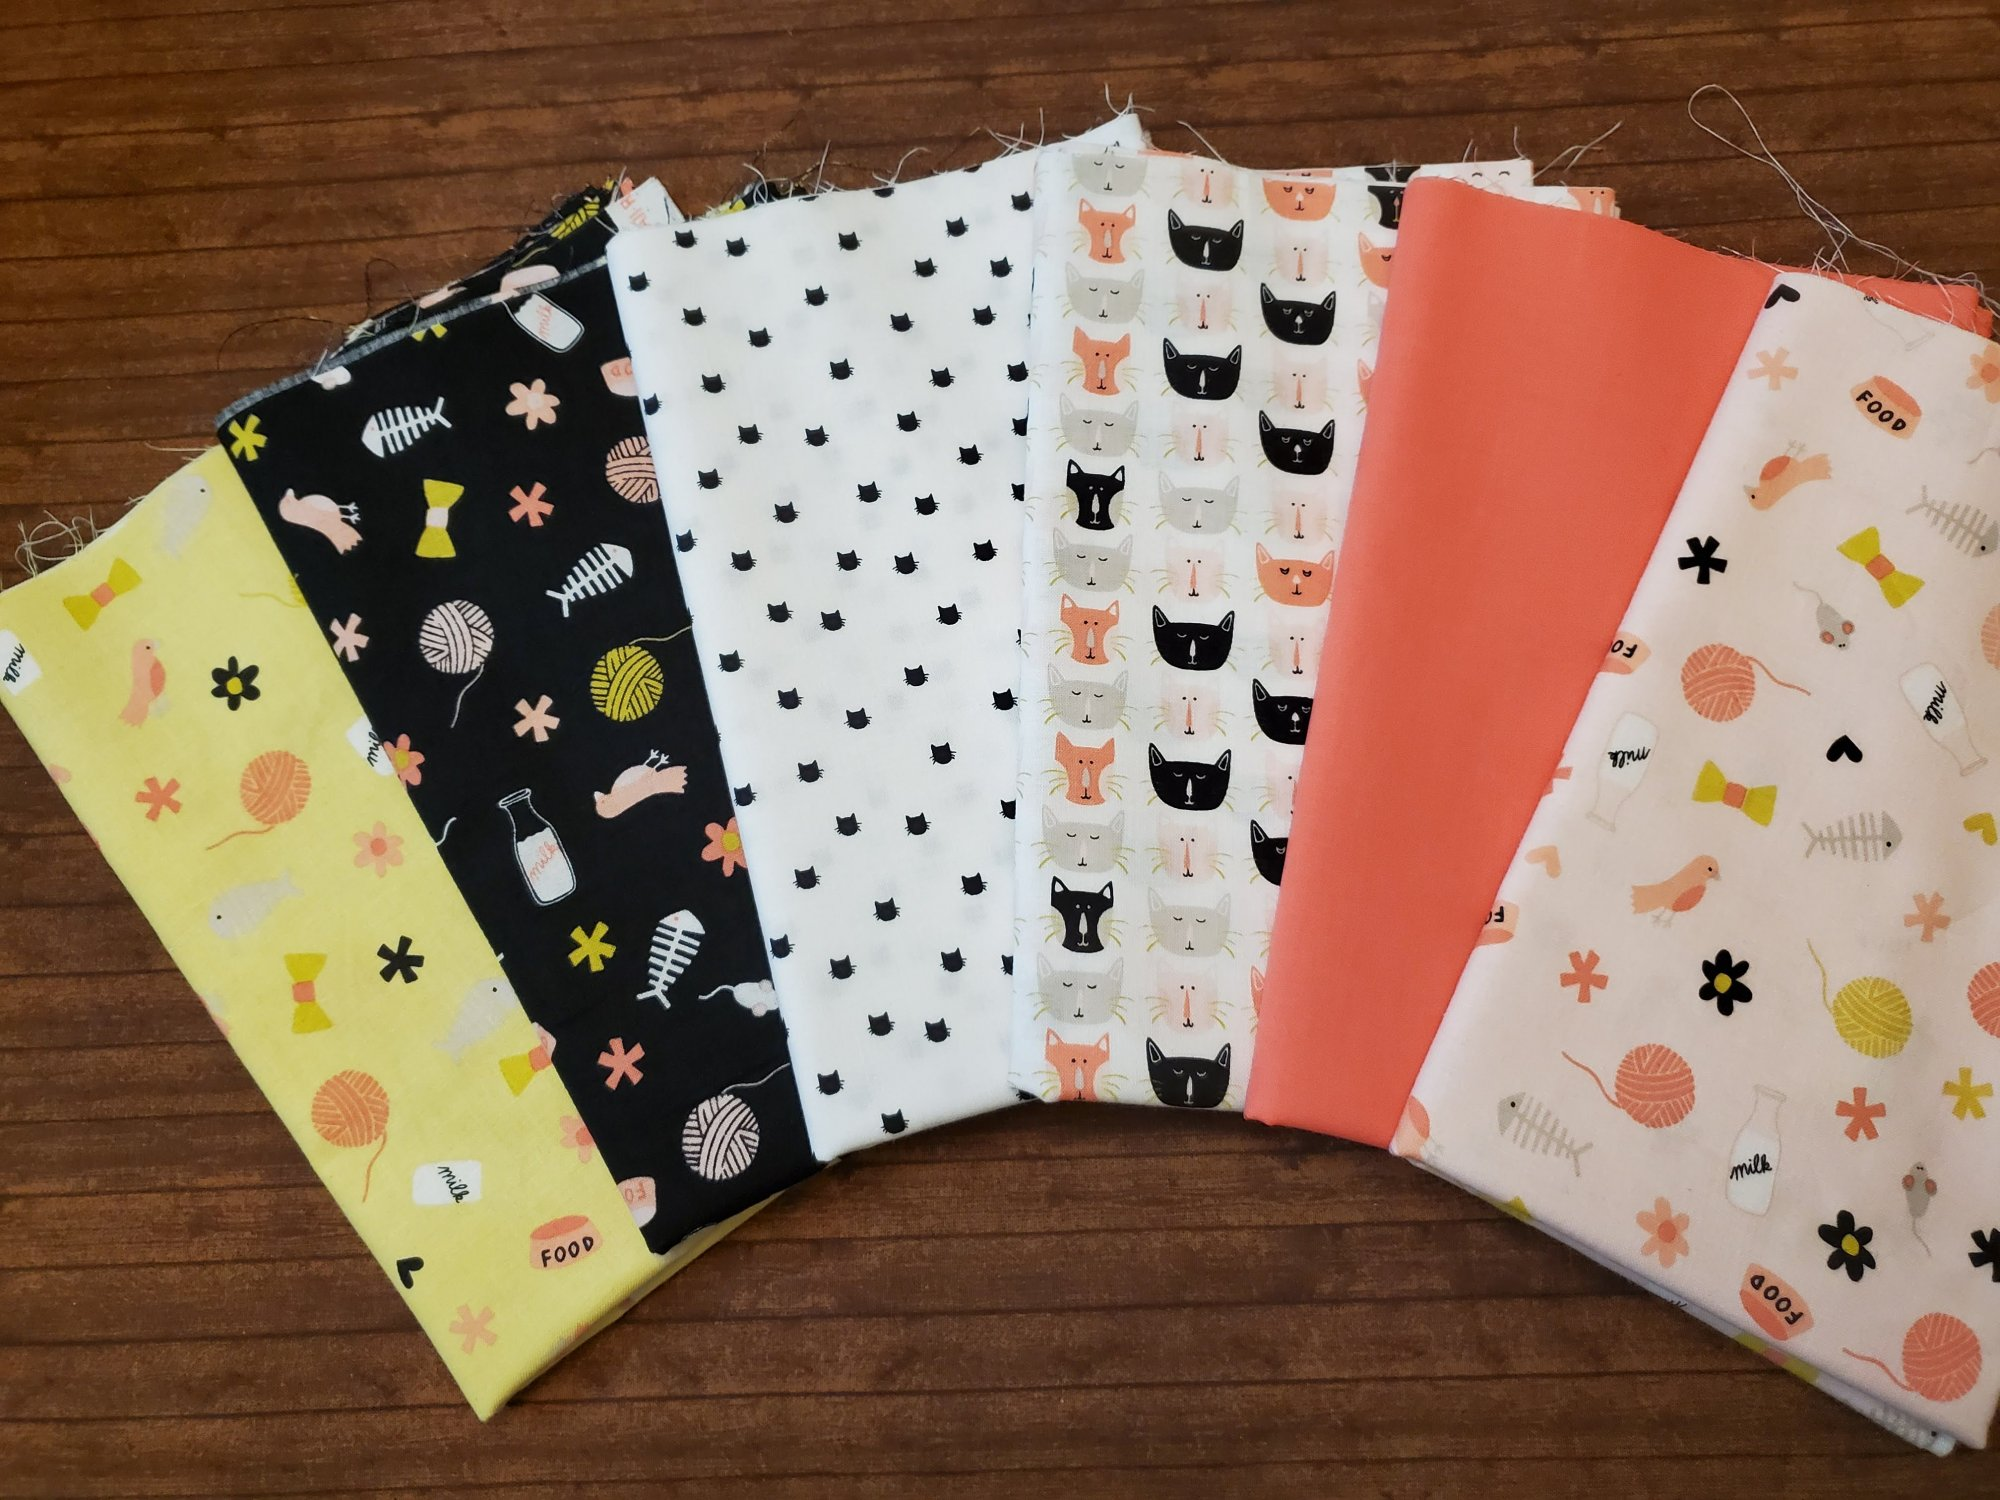 Cat's Meow by Riley Blake - 6 Piece Half Yard Bundle Pack